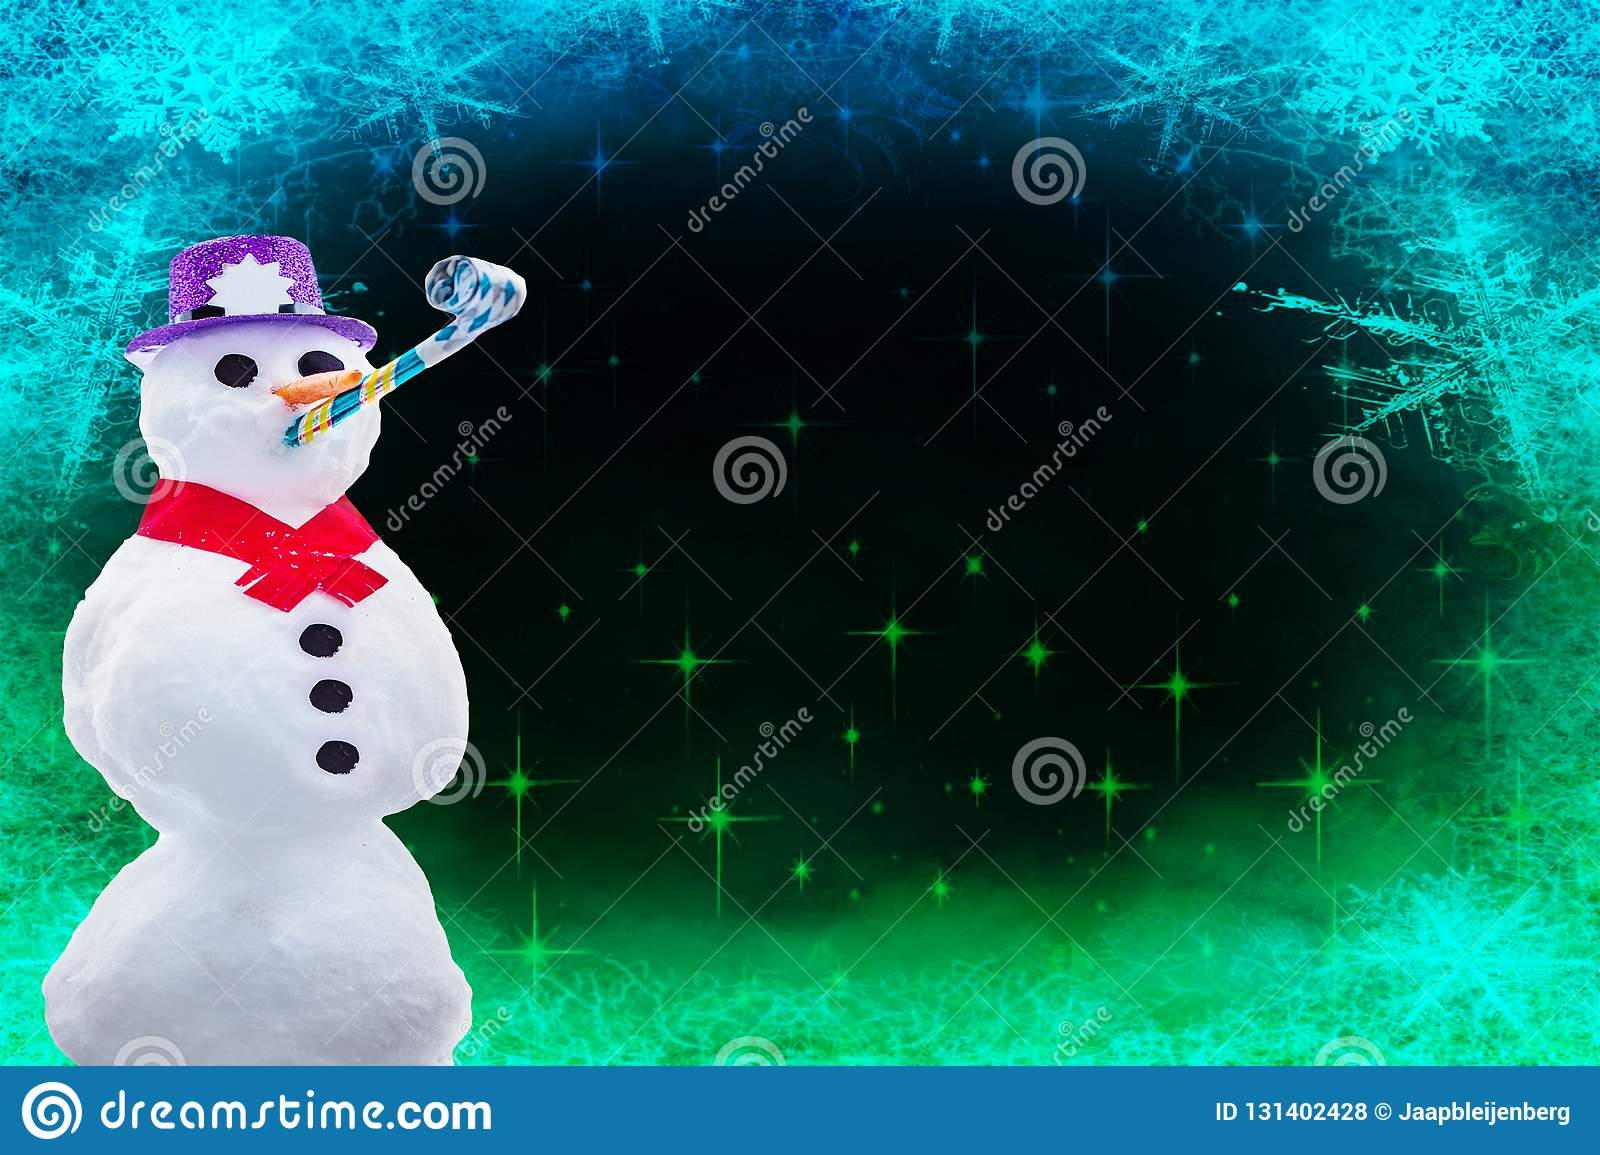 merry christmas or happy new year card a funny partying snowman isolated on a frozen background